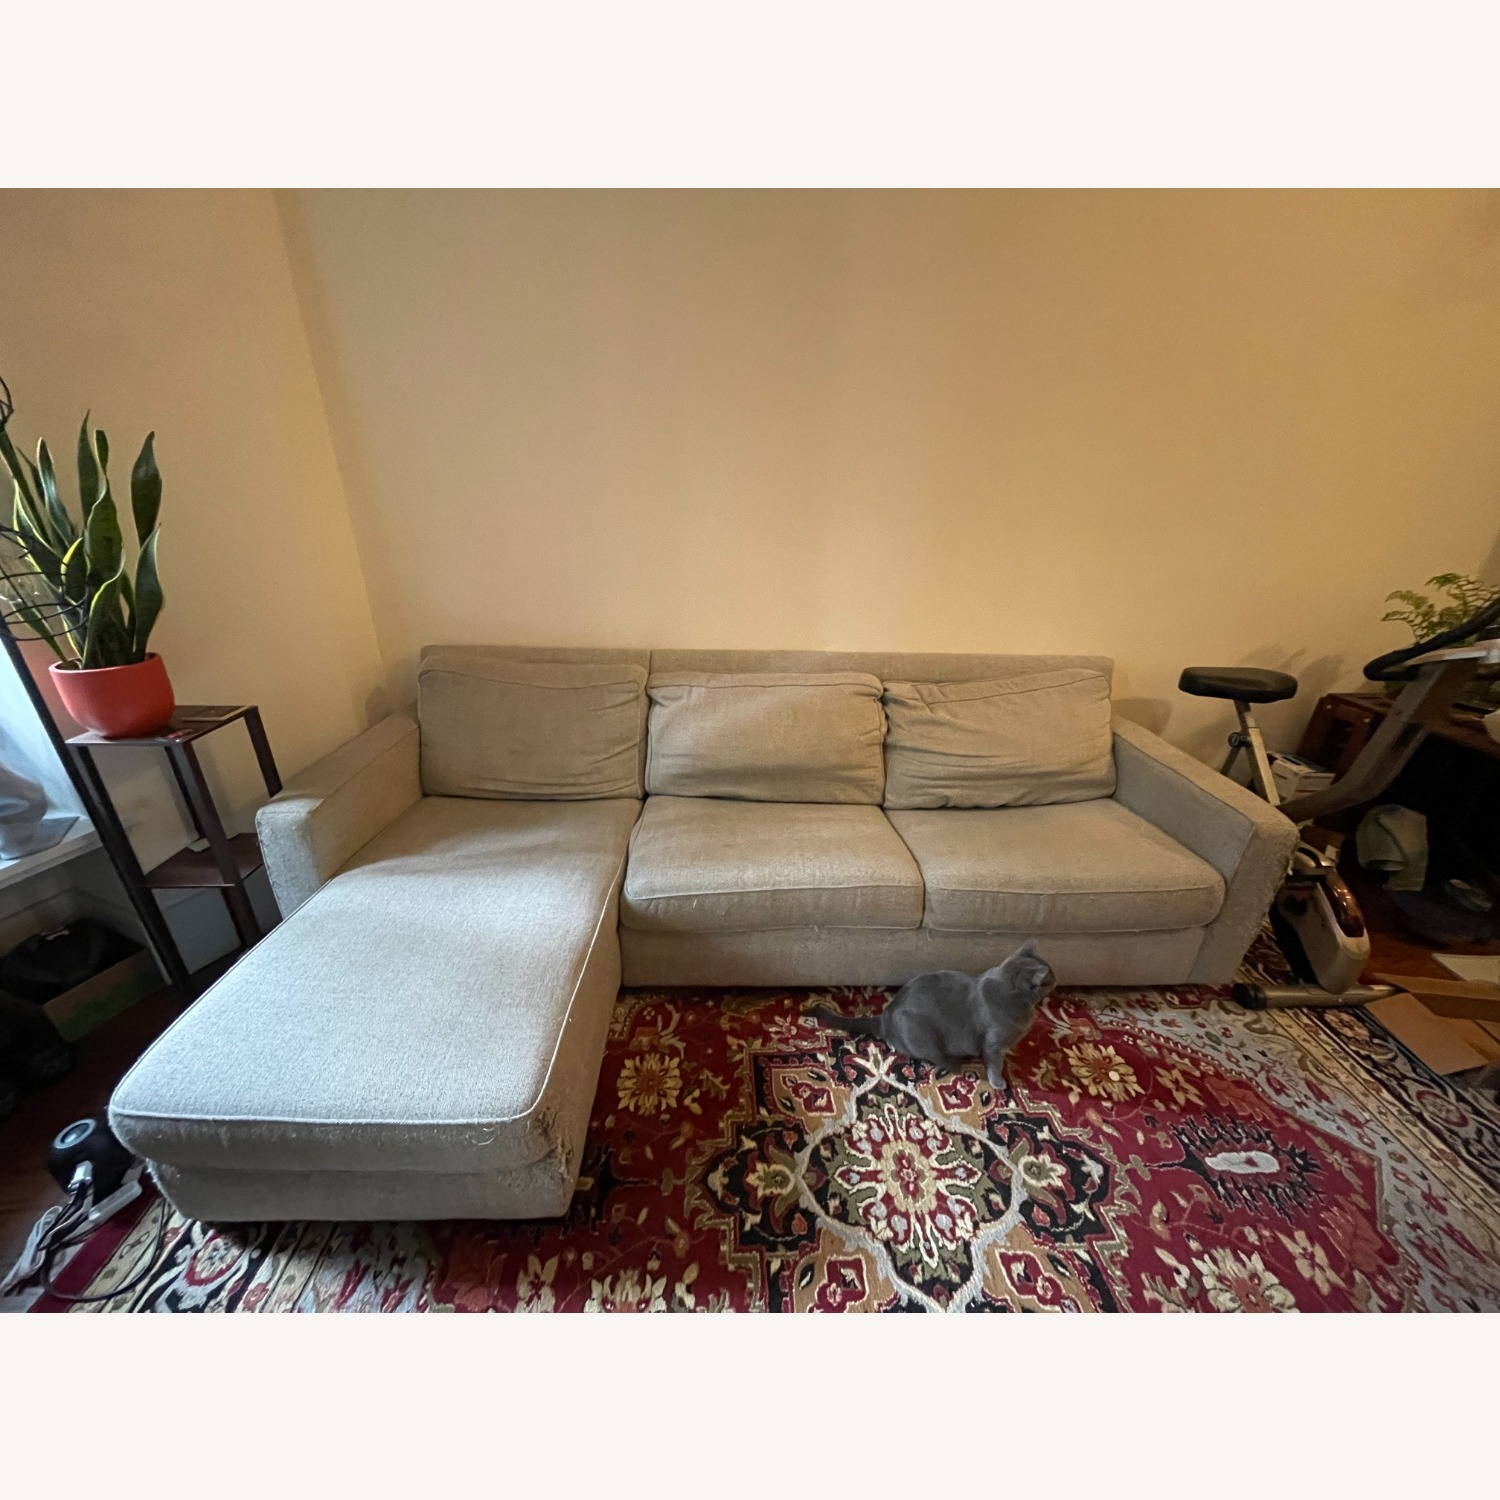 West Elm Gray Henry Sleeper Sofa with Chaise - image-2